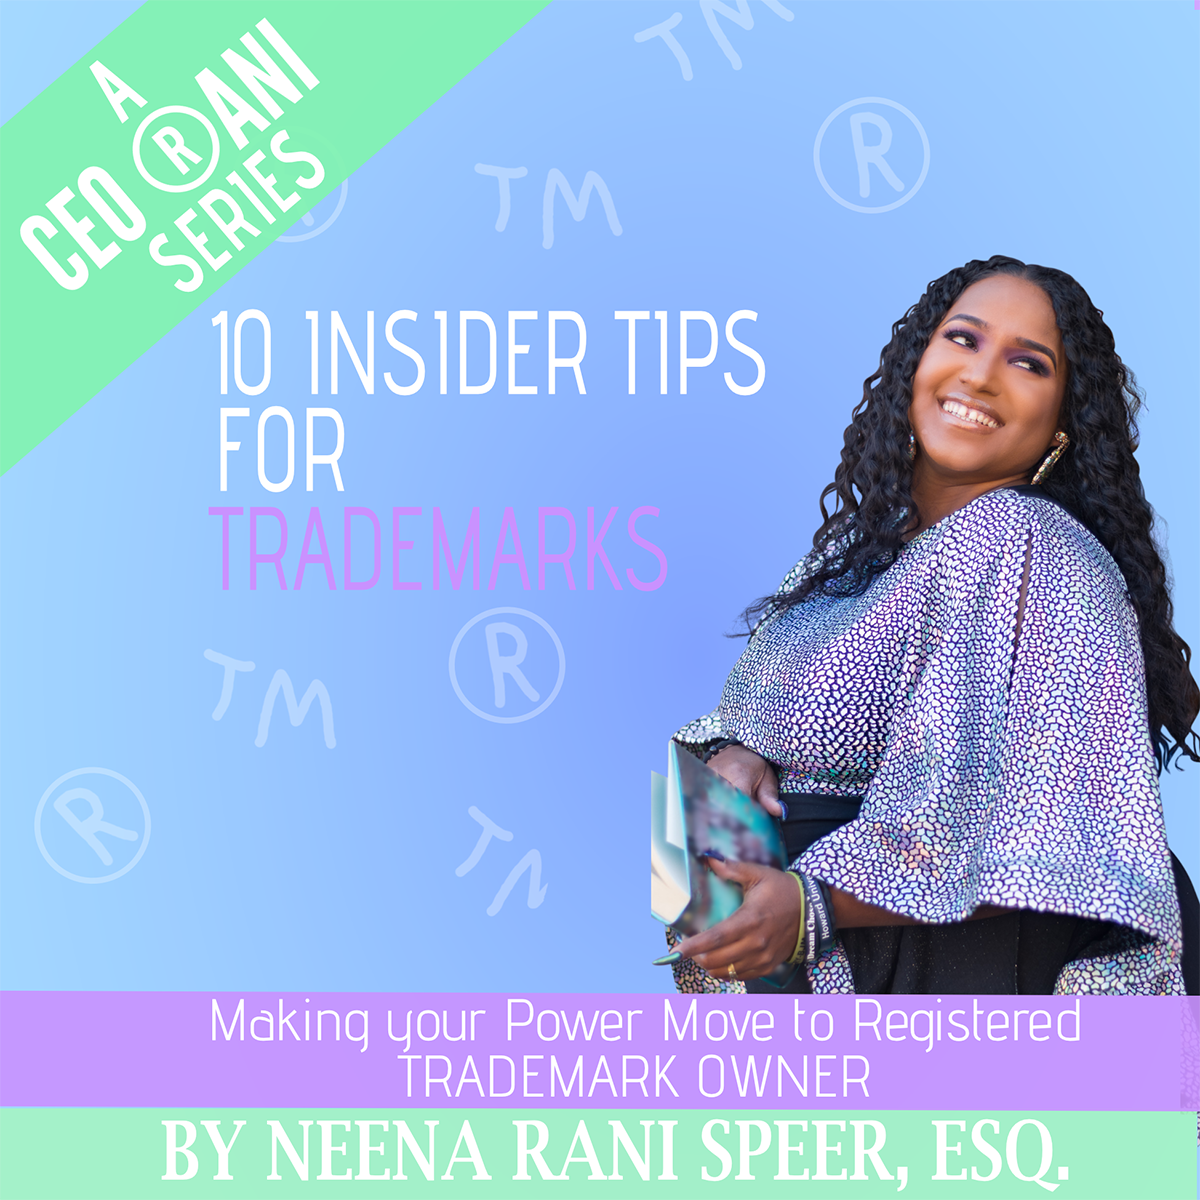 10 Insider Tips for Trademarks - Neena the L.A.S.T. Brand - 4.15.21 - 1200 px